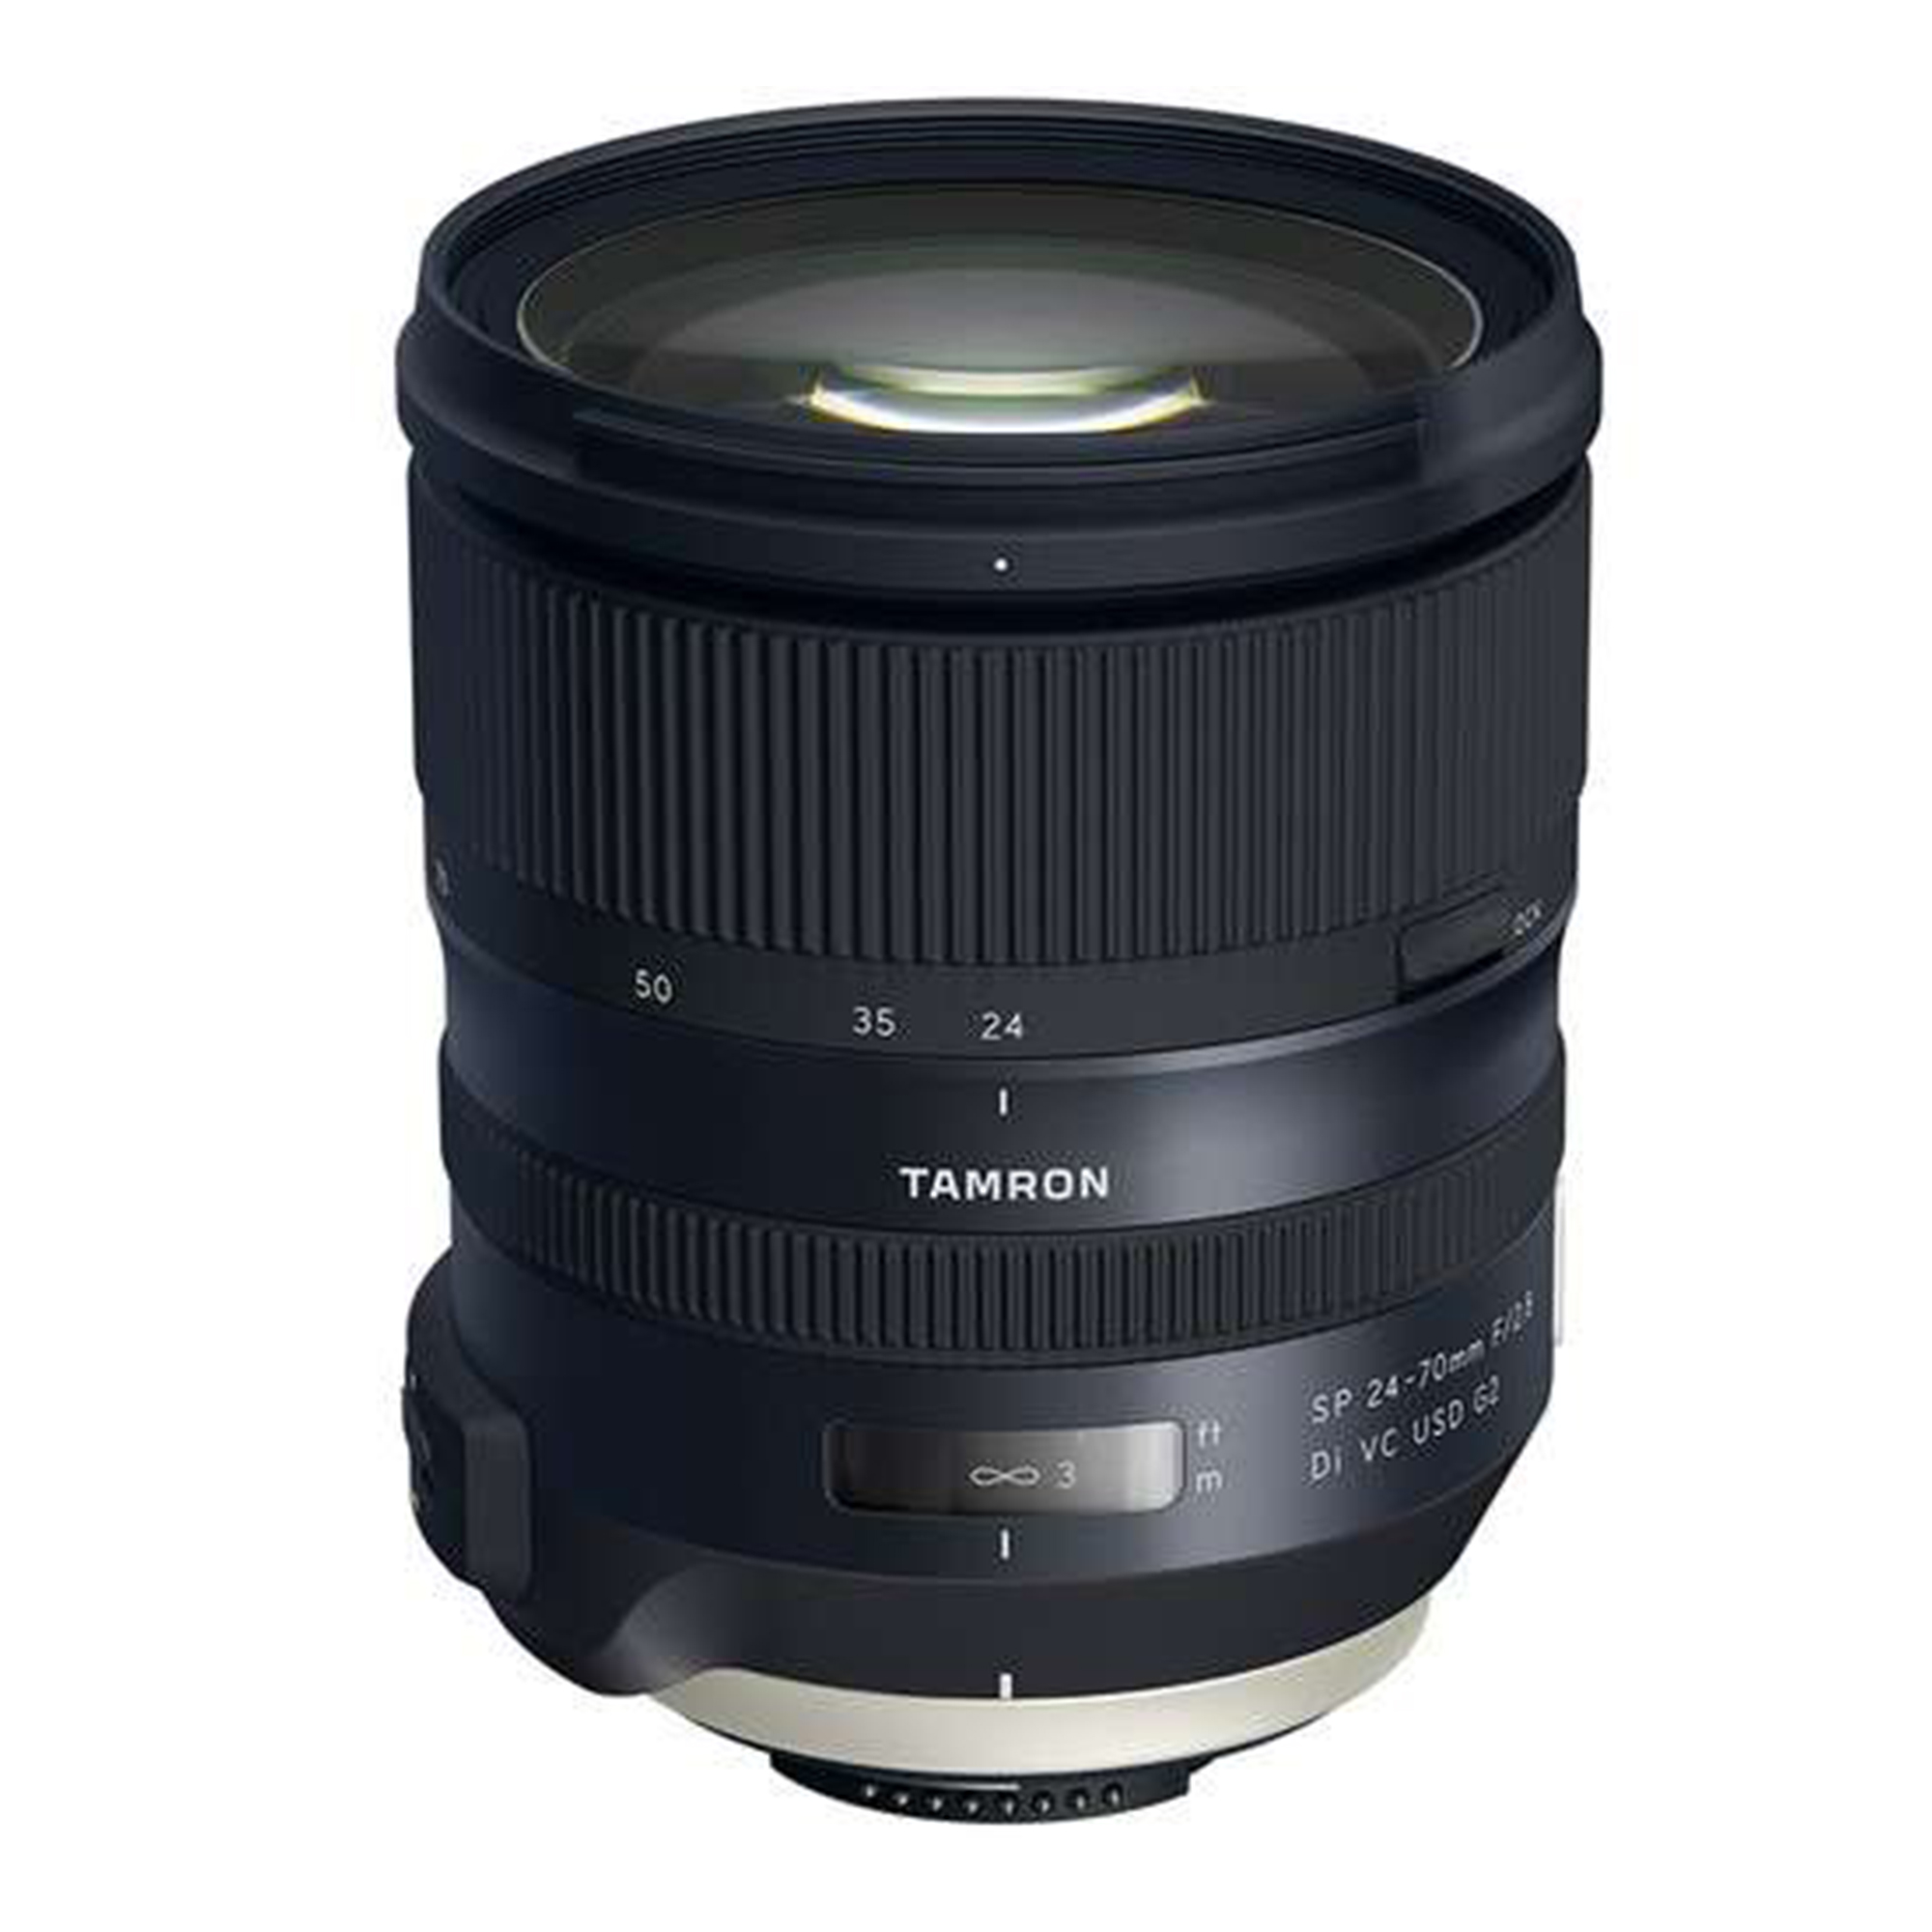 Tamron SP 24-70mm f/2.8 Di VC USD G2 Lens for Canon ِِEF